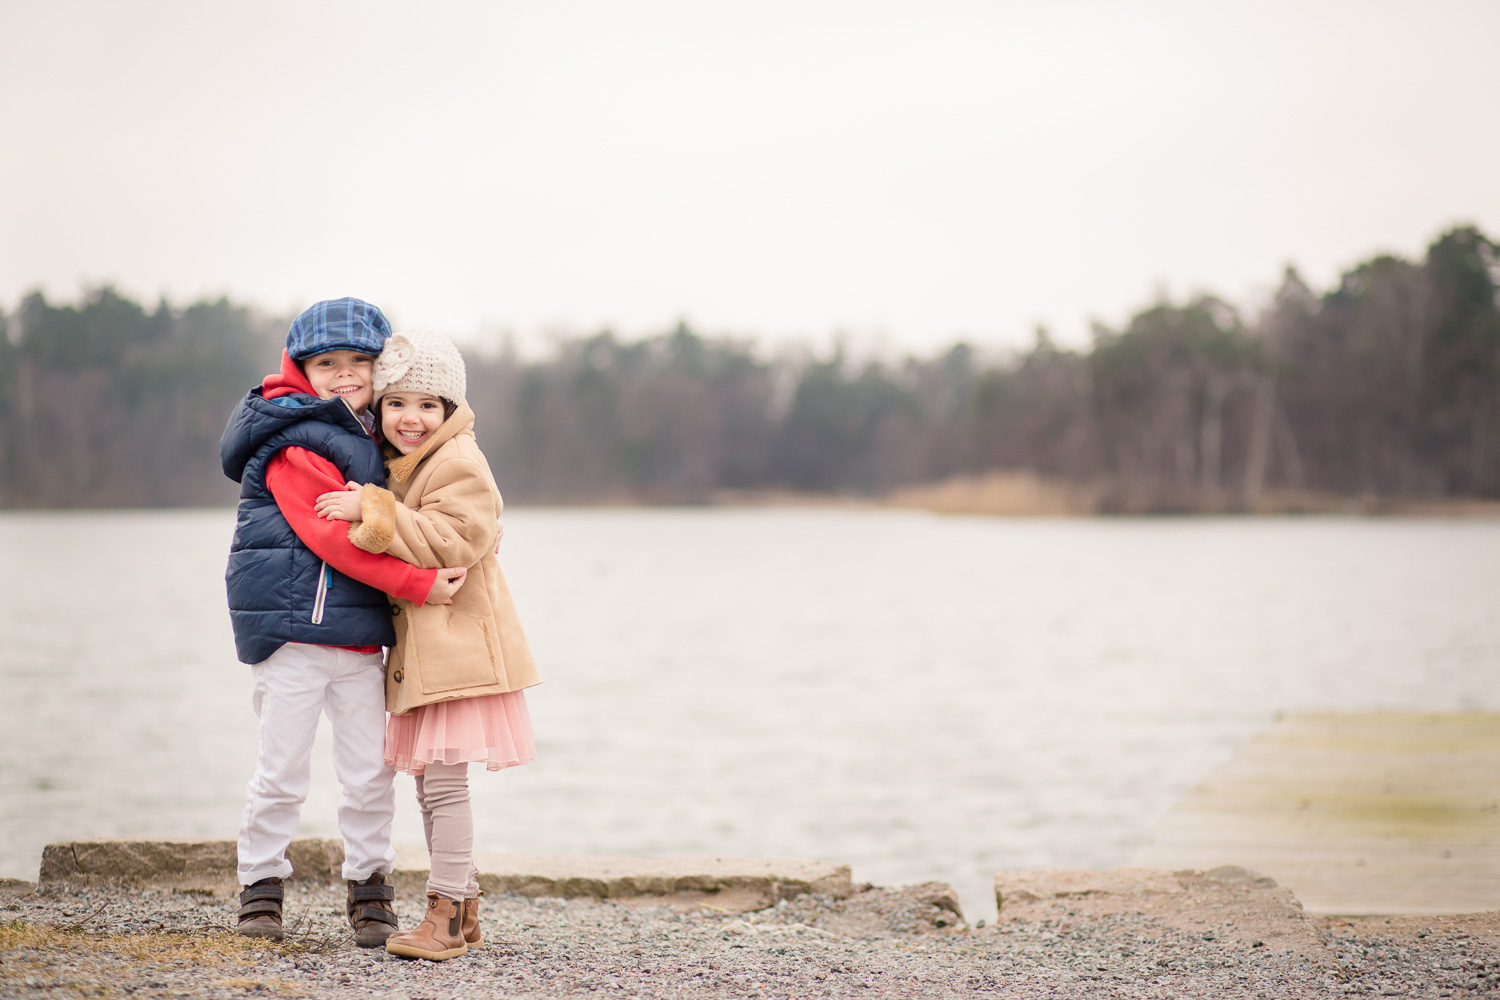 children-hugging-in-Danderyd-by-Stockholm-family-photographer-Sandra-Jolly.jpg